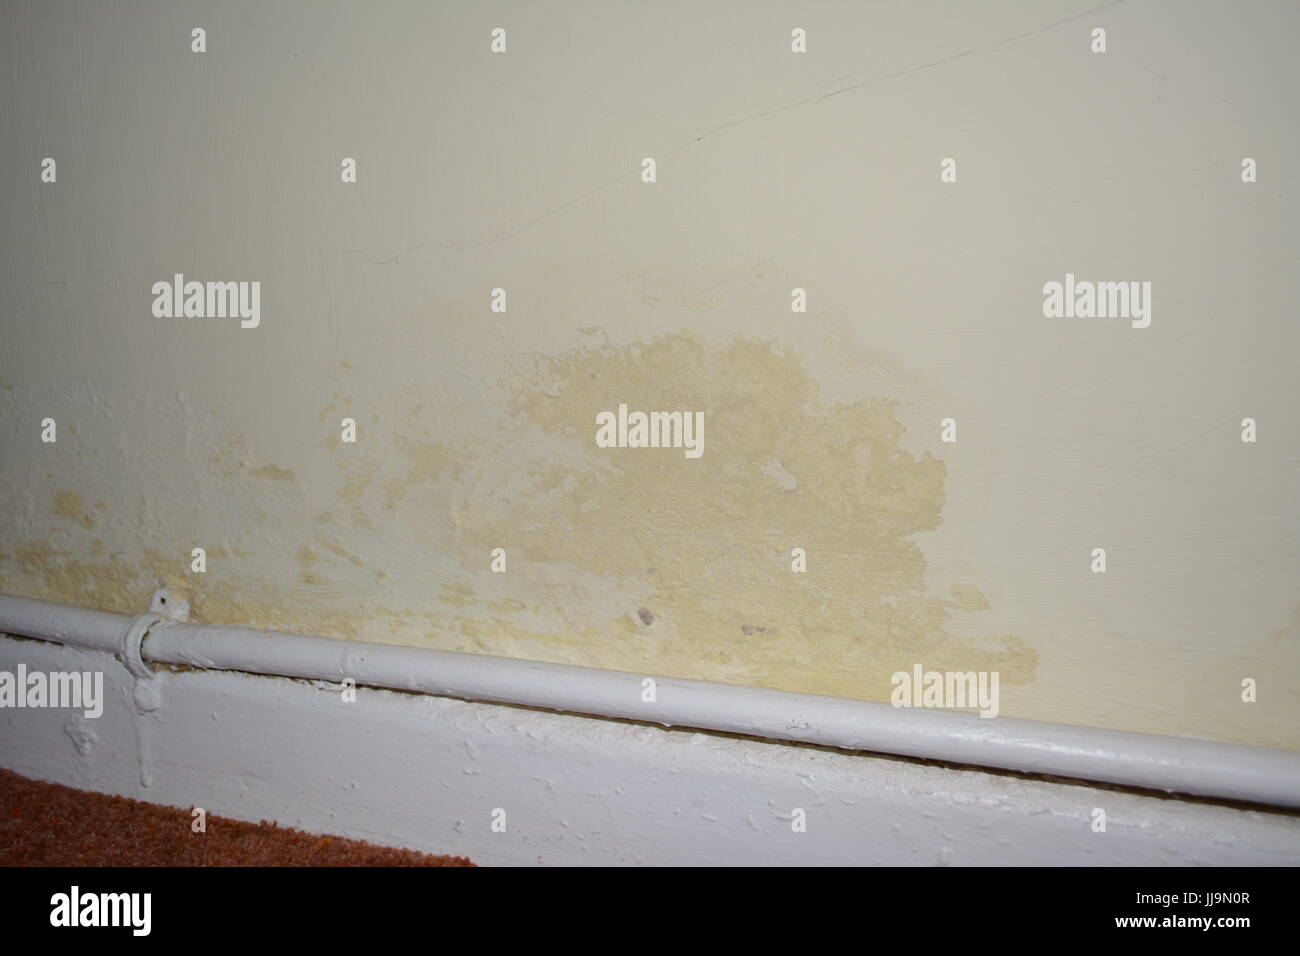 Rising damp on inside wall of old house re peeling paint poor rising damp on inside wall of old house re peeling paint poor decoration dpc dpm damp proof course membrane lack of heating pipework and heating pipes solutioingenieria Images